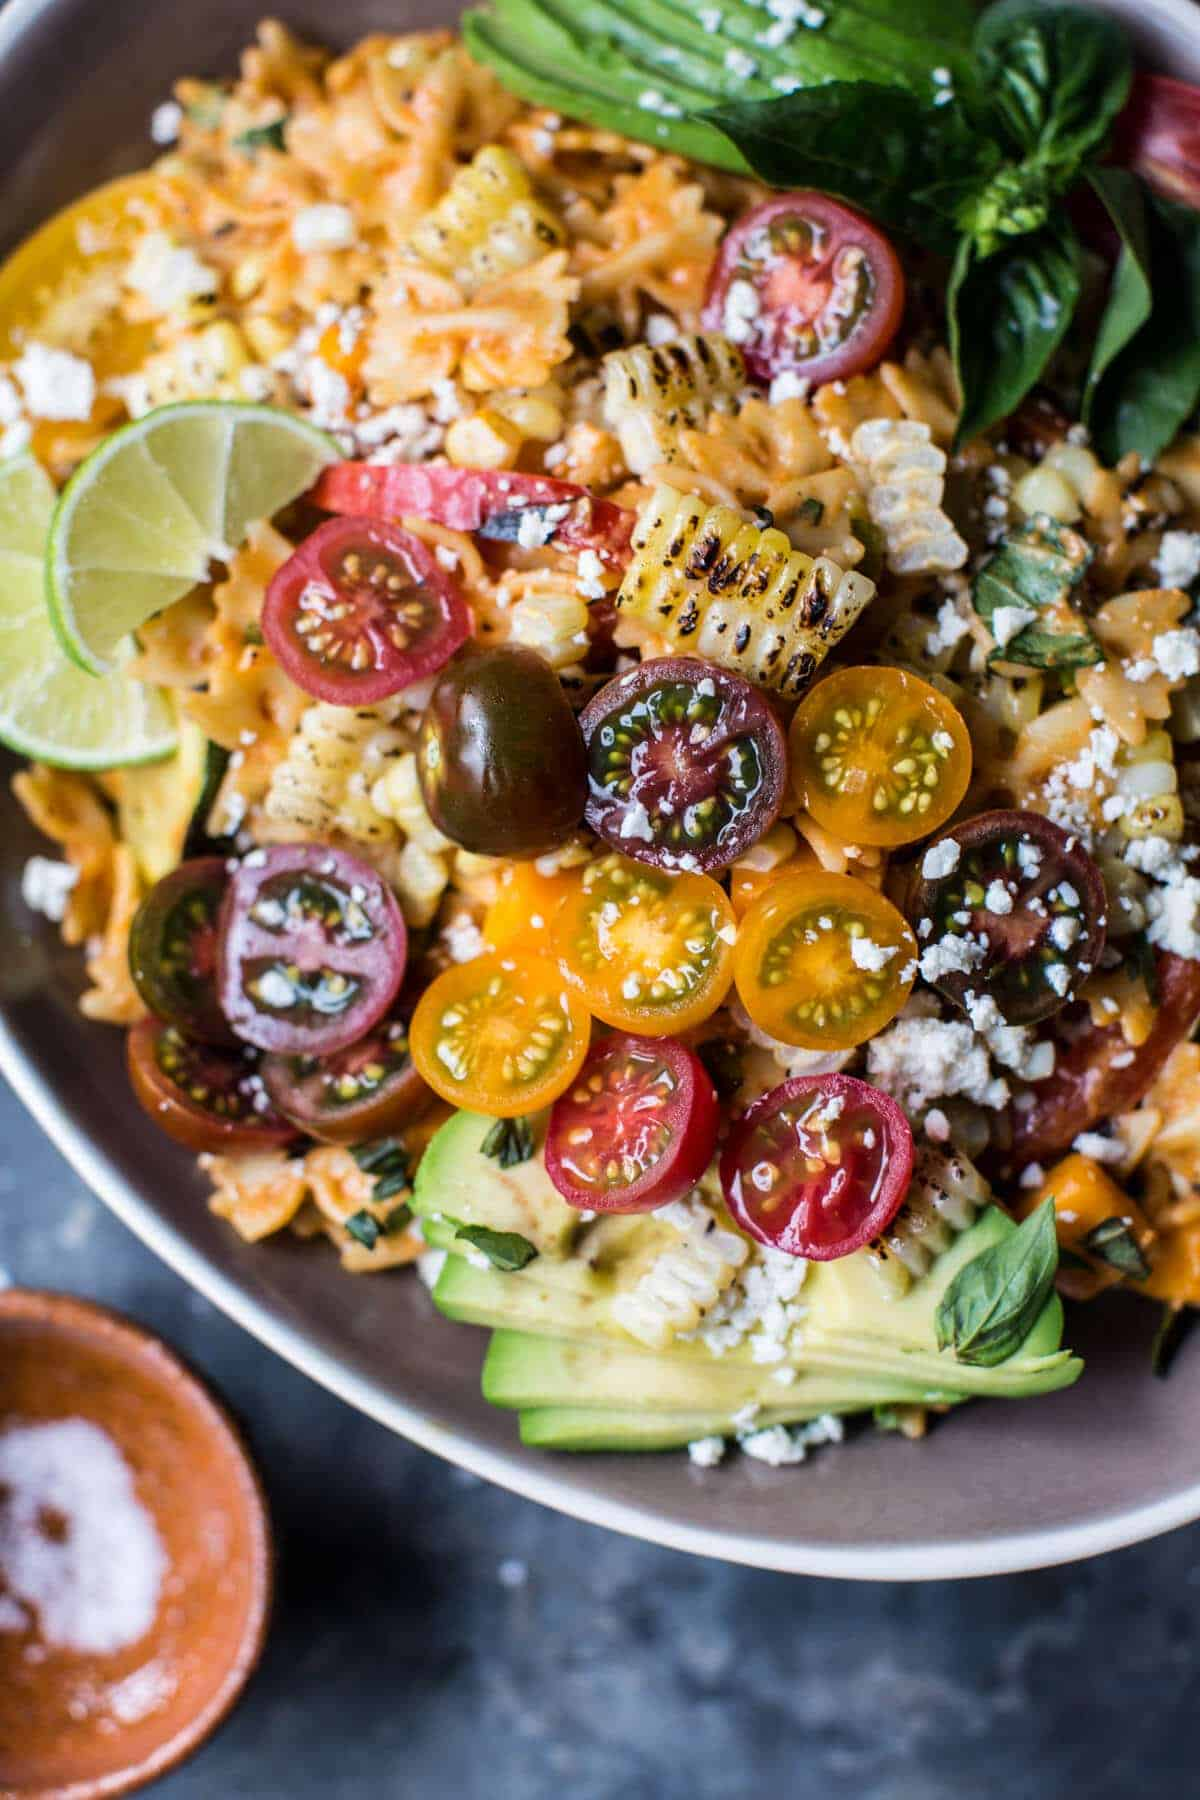 Charred Corn and Zucchini Enchilada Pasta Salad. - Hifow ...